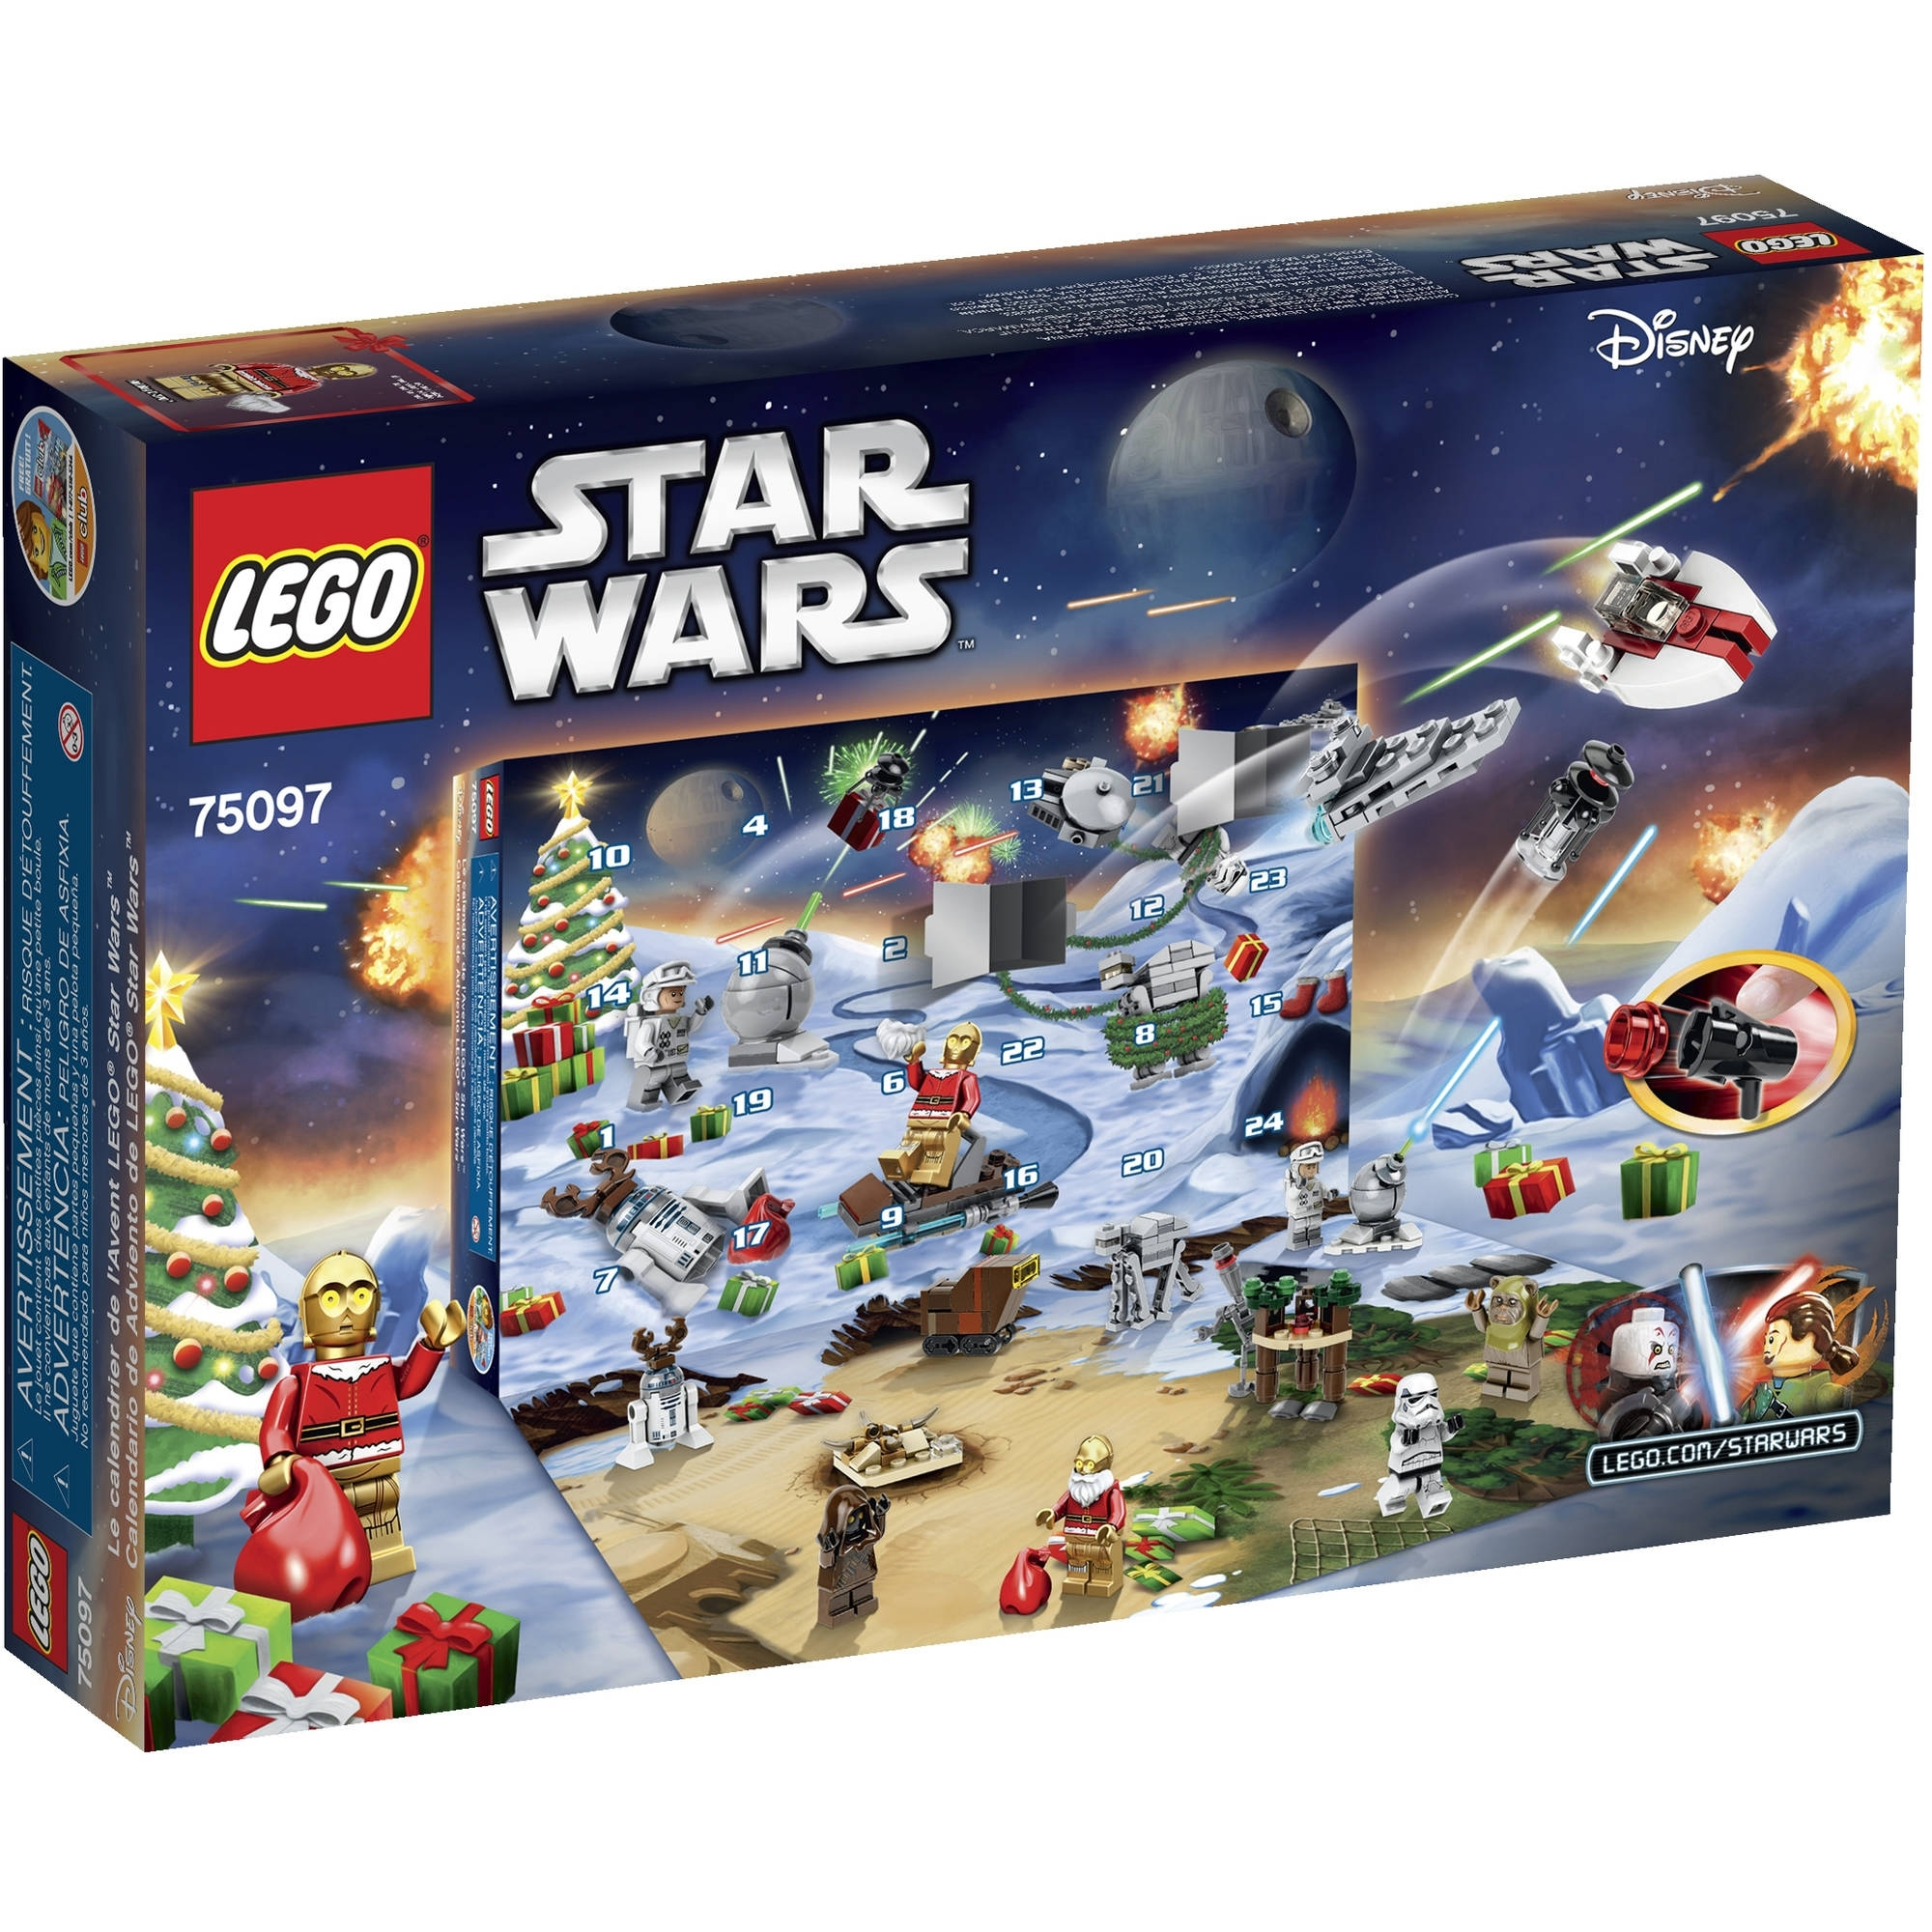 Lego Star Wars Advent Calendar 75097 - Walmart within The Lego Star Wars Chirstimas Set Code